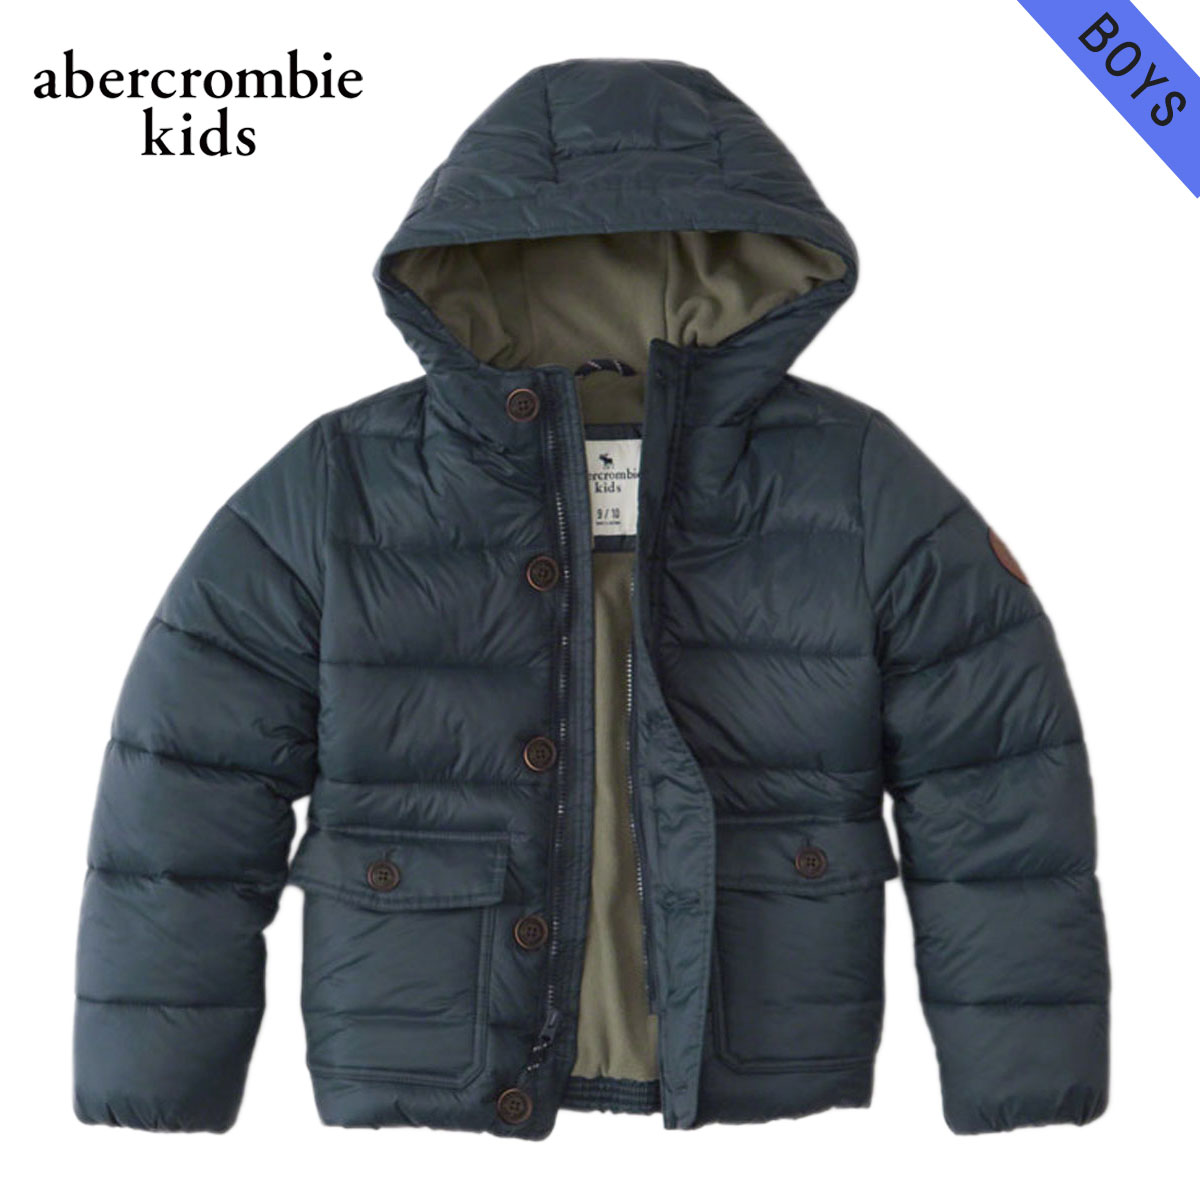 15%OFFセール 【販売期間 12/4 20:00~12/11 1:59】 アバクロキッズ AbercrombieKids 正規品 子供服 ボーイズ アウタージャケット hooded puffer jacket 232-716-0203-023 D00S20